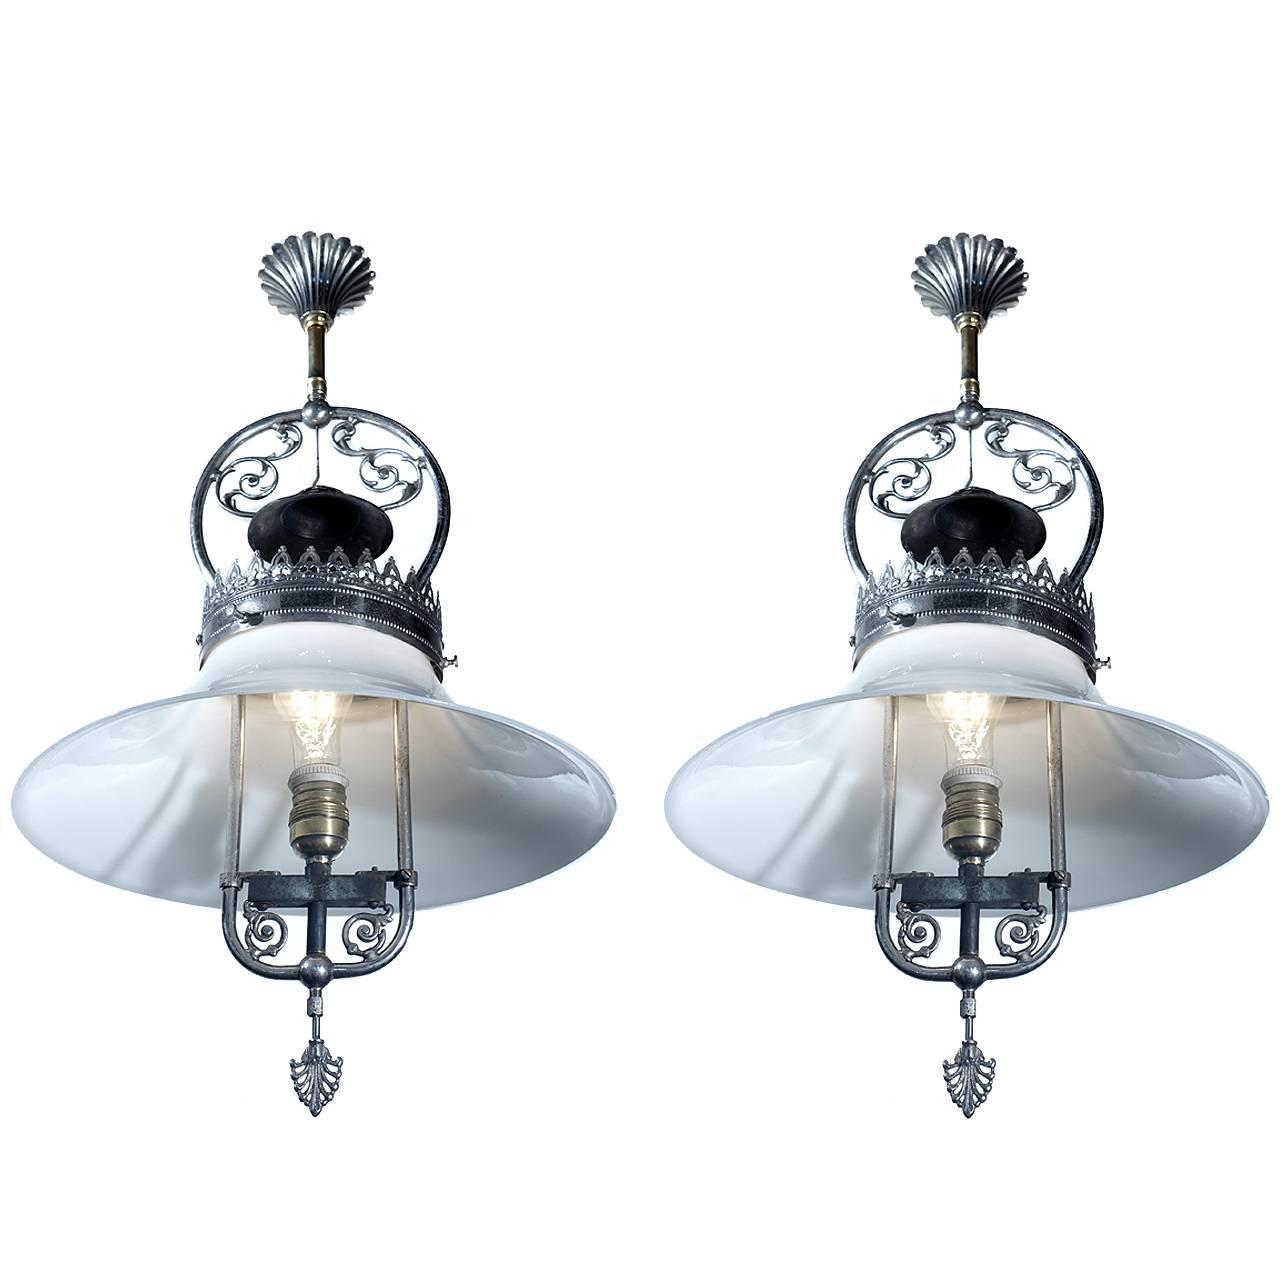 pair of ornate open frame converted gas lamps at 1stdibs. Black Bedroom Furniture Sets. Home Design Ideas